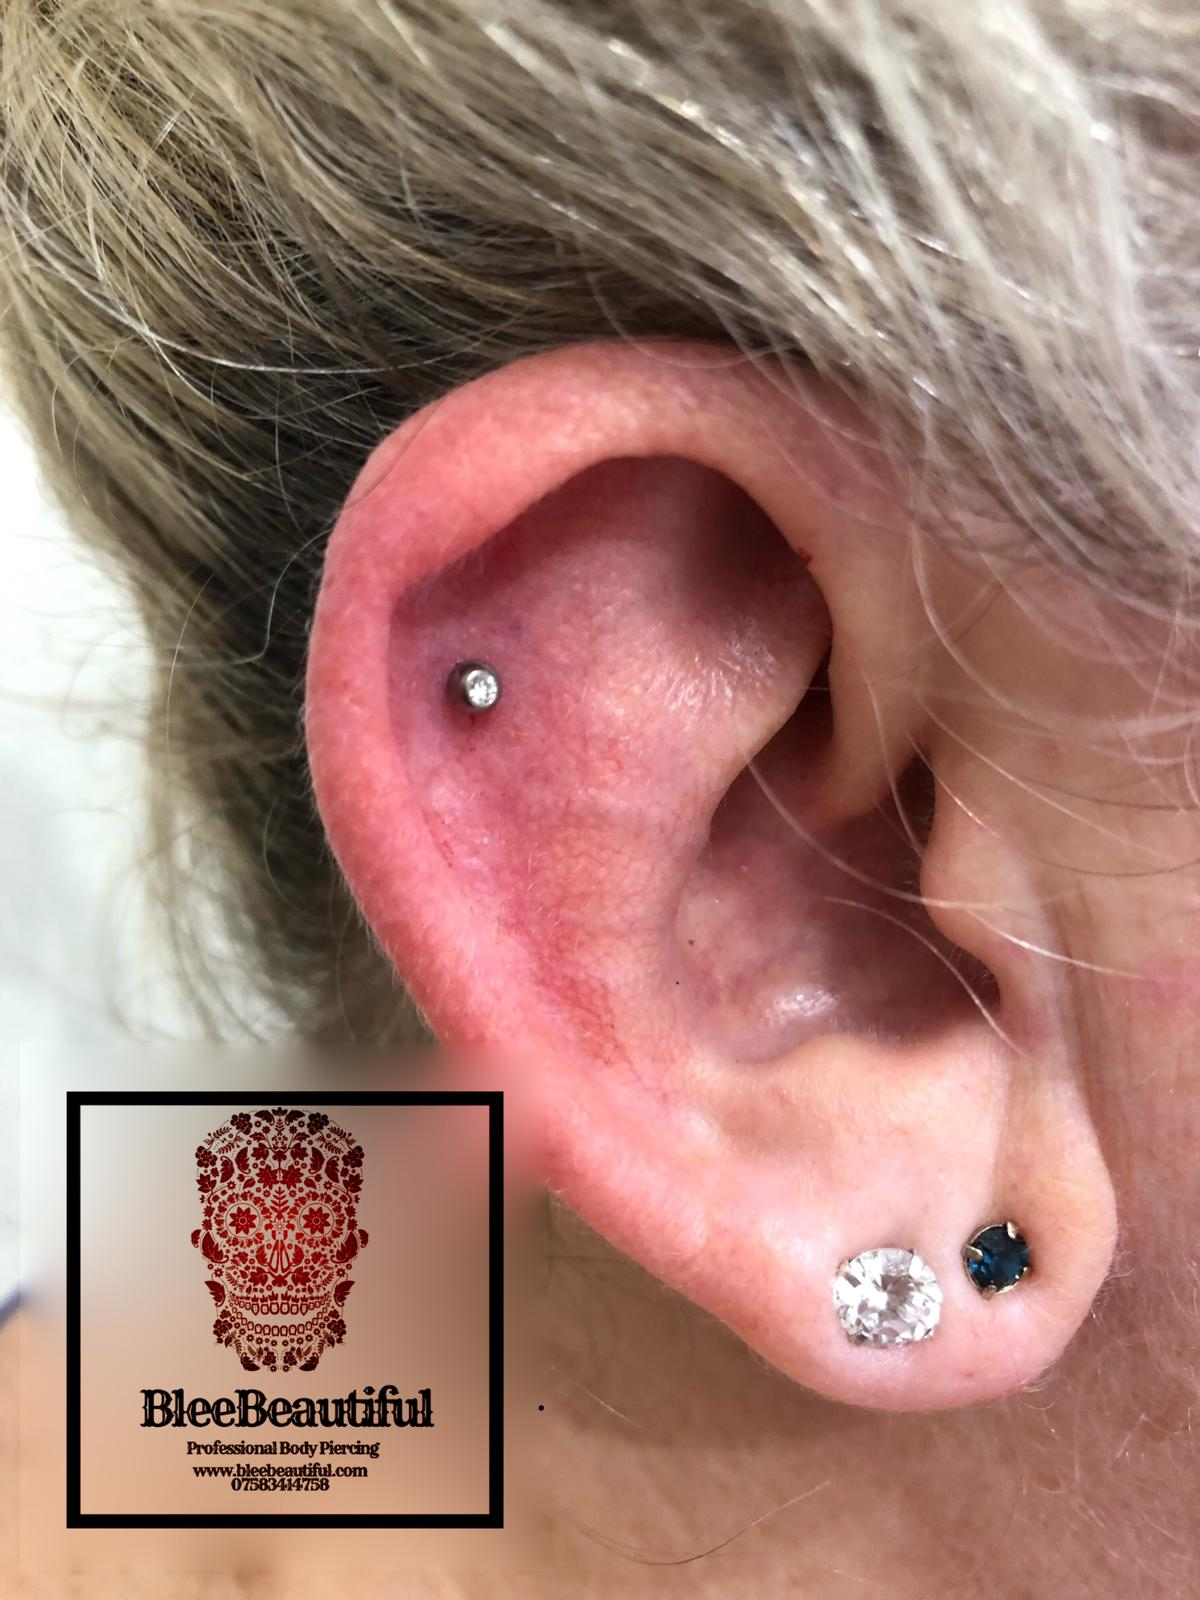 Venus-Beauty-Hair-Tavistock-Devon-Salon-Piercer-Kim-Pope-Body-Piercings-Ear-Piercing.jpg